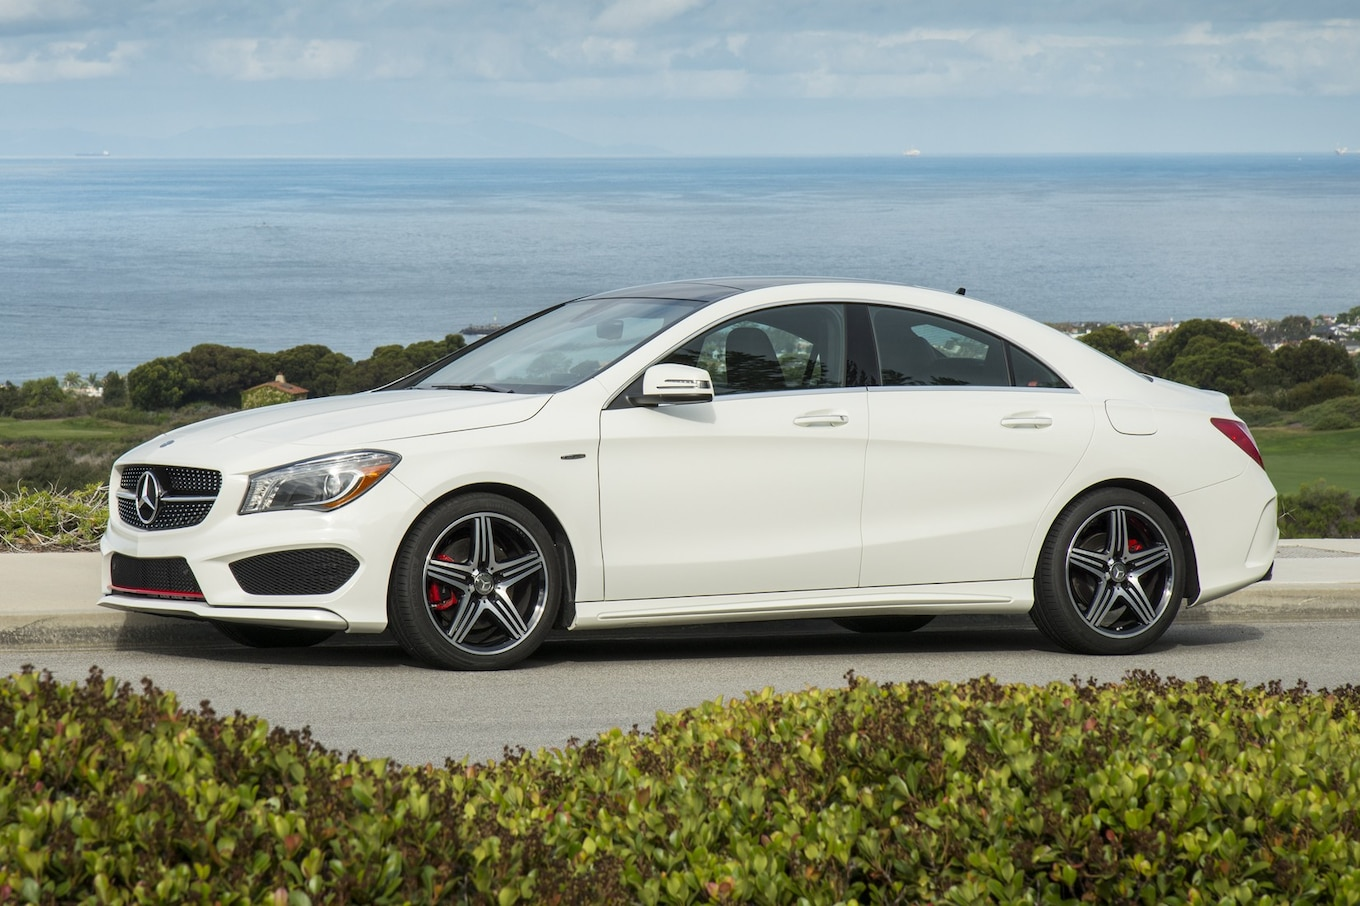 2015 Mercedes Benz CLA250 4Matic Update 4 Using Real MPG